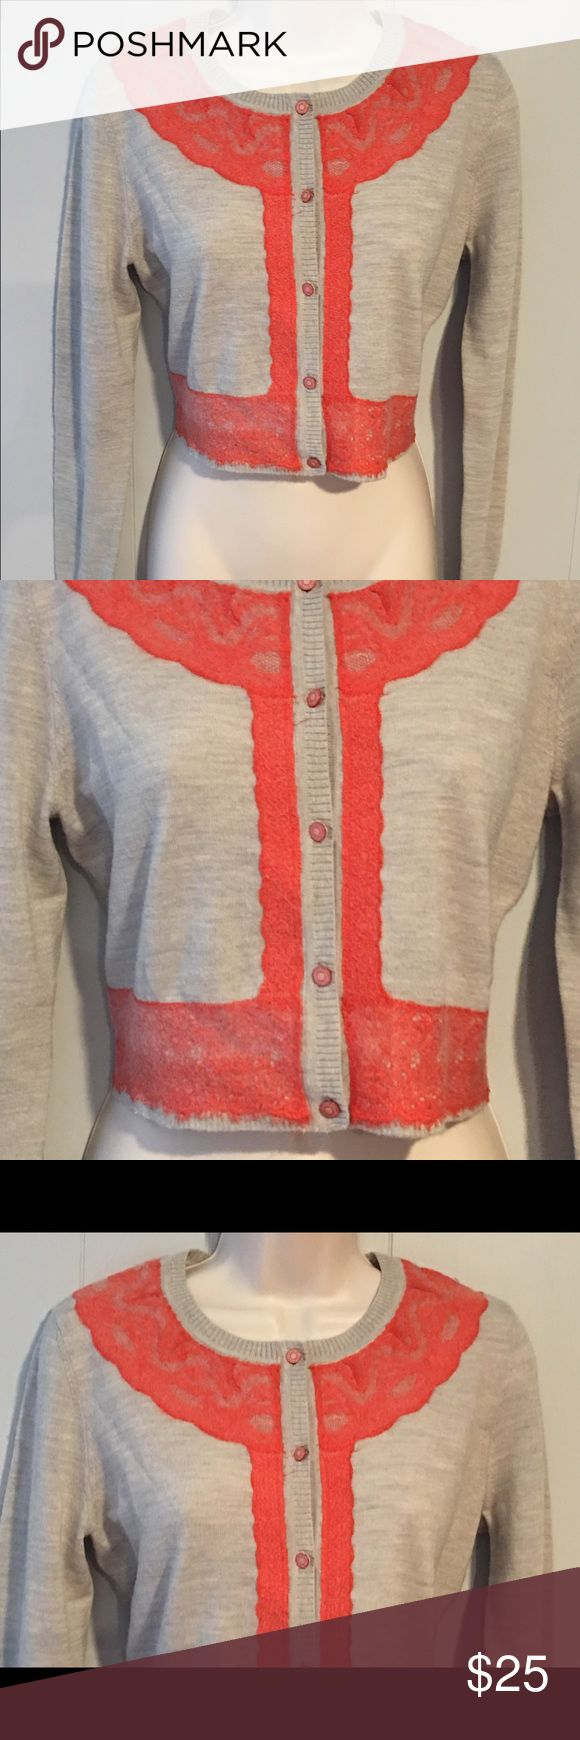 """Charlie & Robin Anthropologie cardigan sweater M Really pretty Charlie & Robin cropped cardigan size: medium in good preowned condition measurements with sweater lying flat on one side chest: 18"""" length 15"""" color: light gray and coral Anthropologie Sweaters Cardigans"""